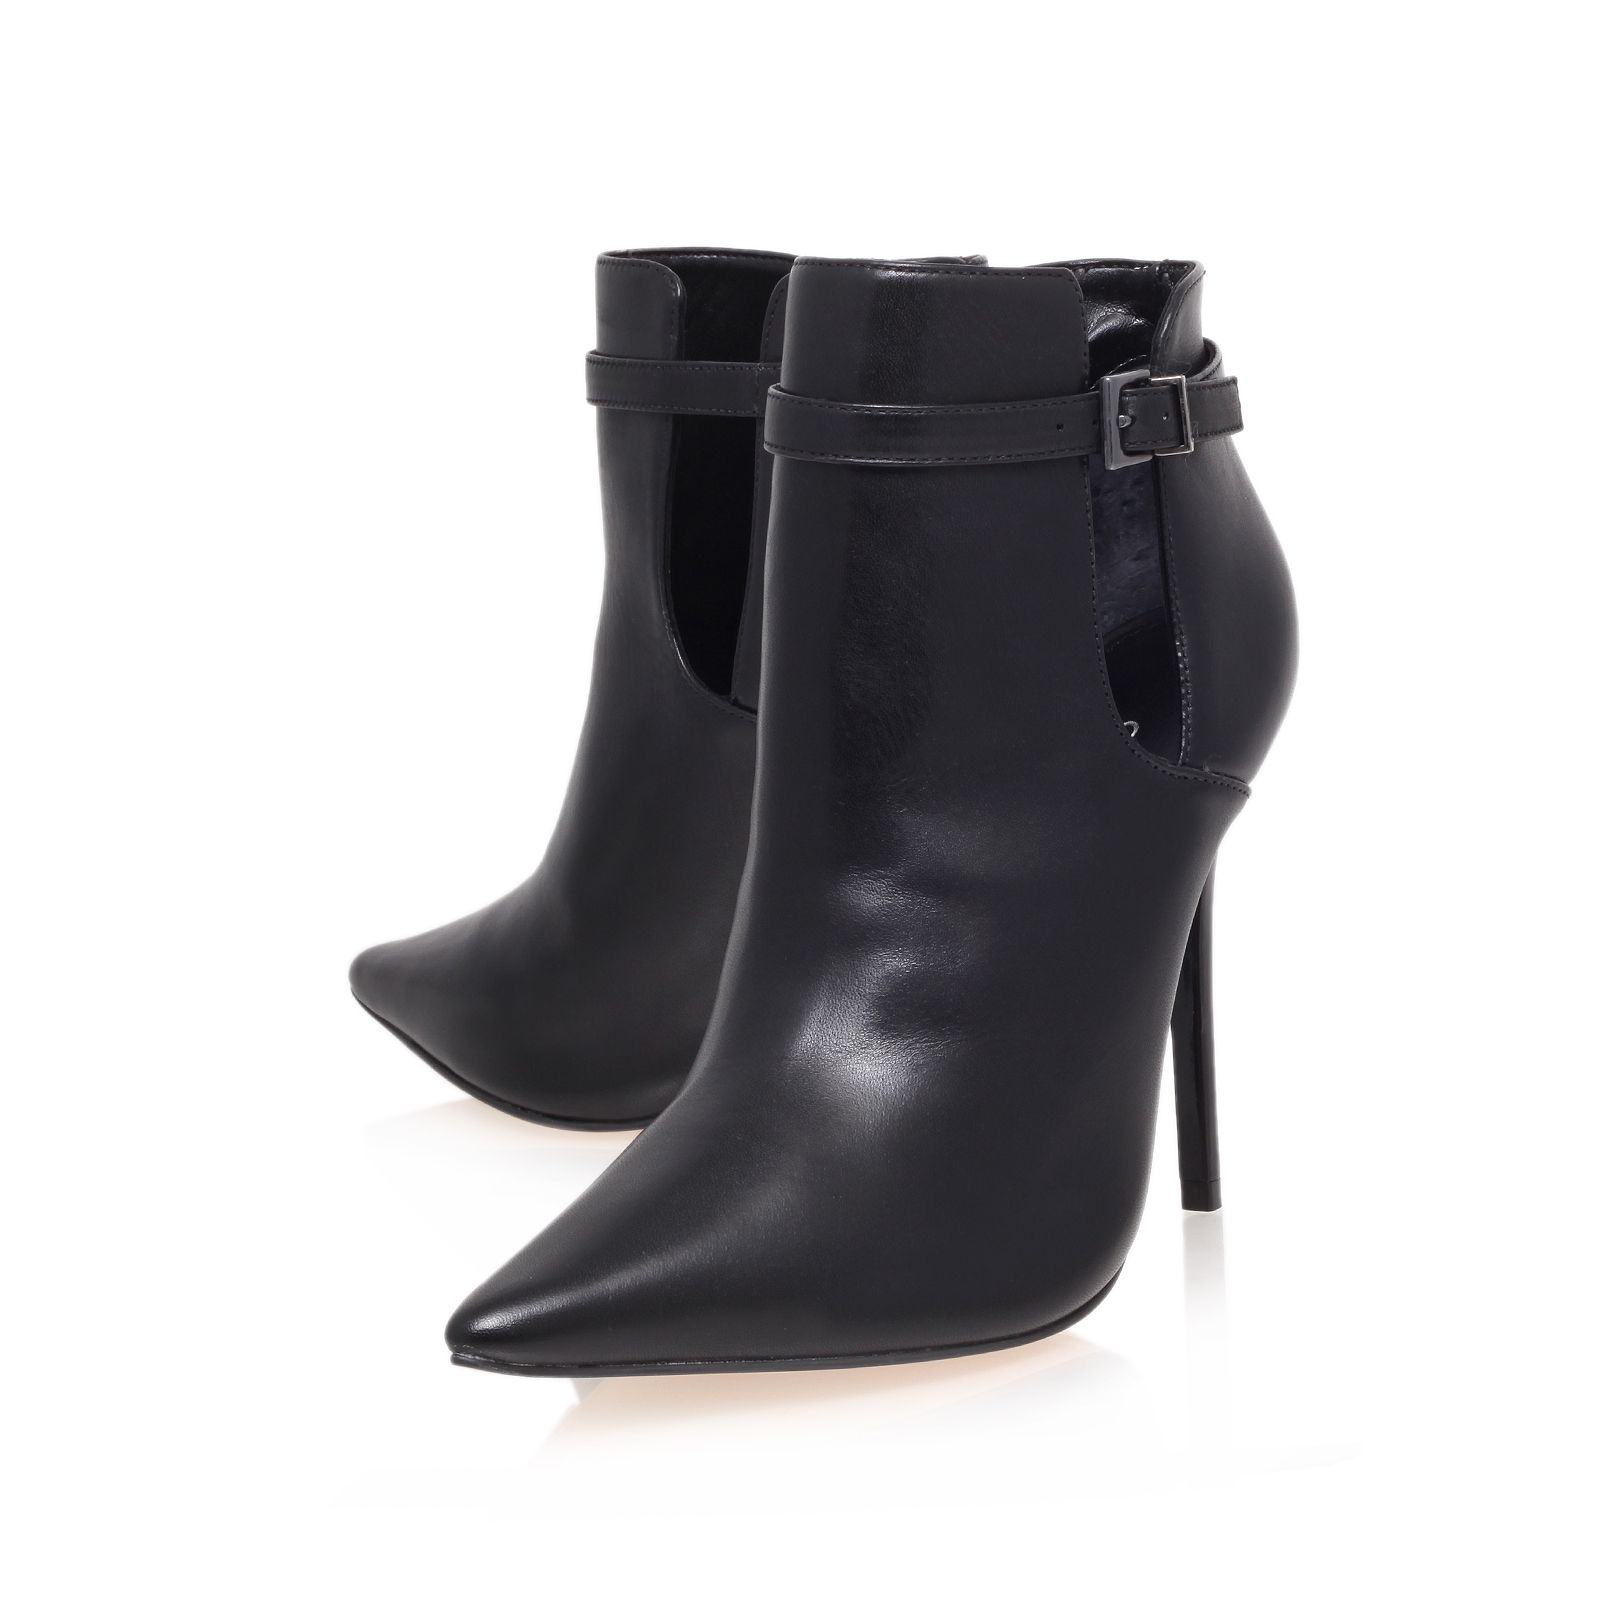 Get high heel ankle boots